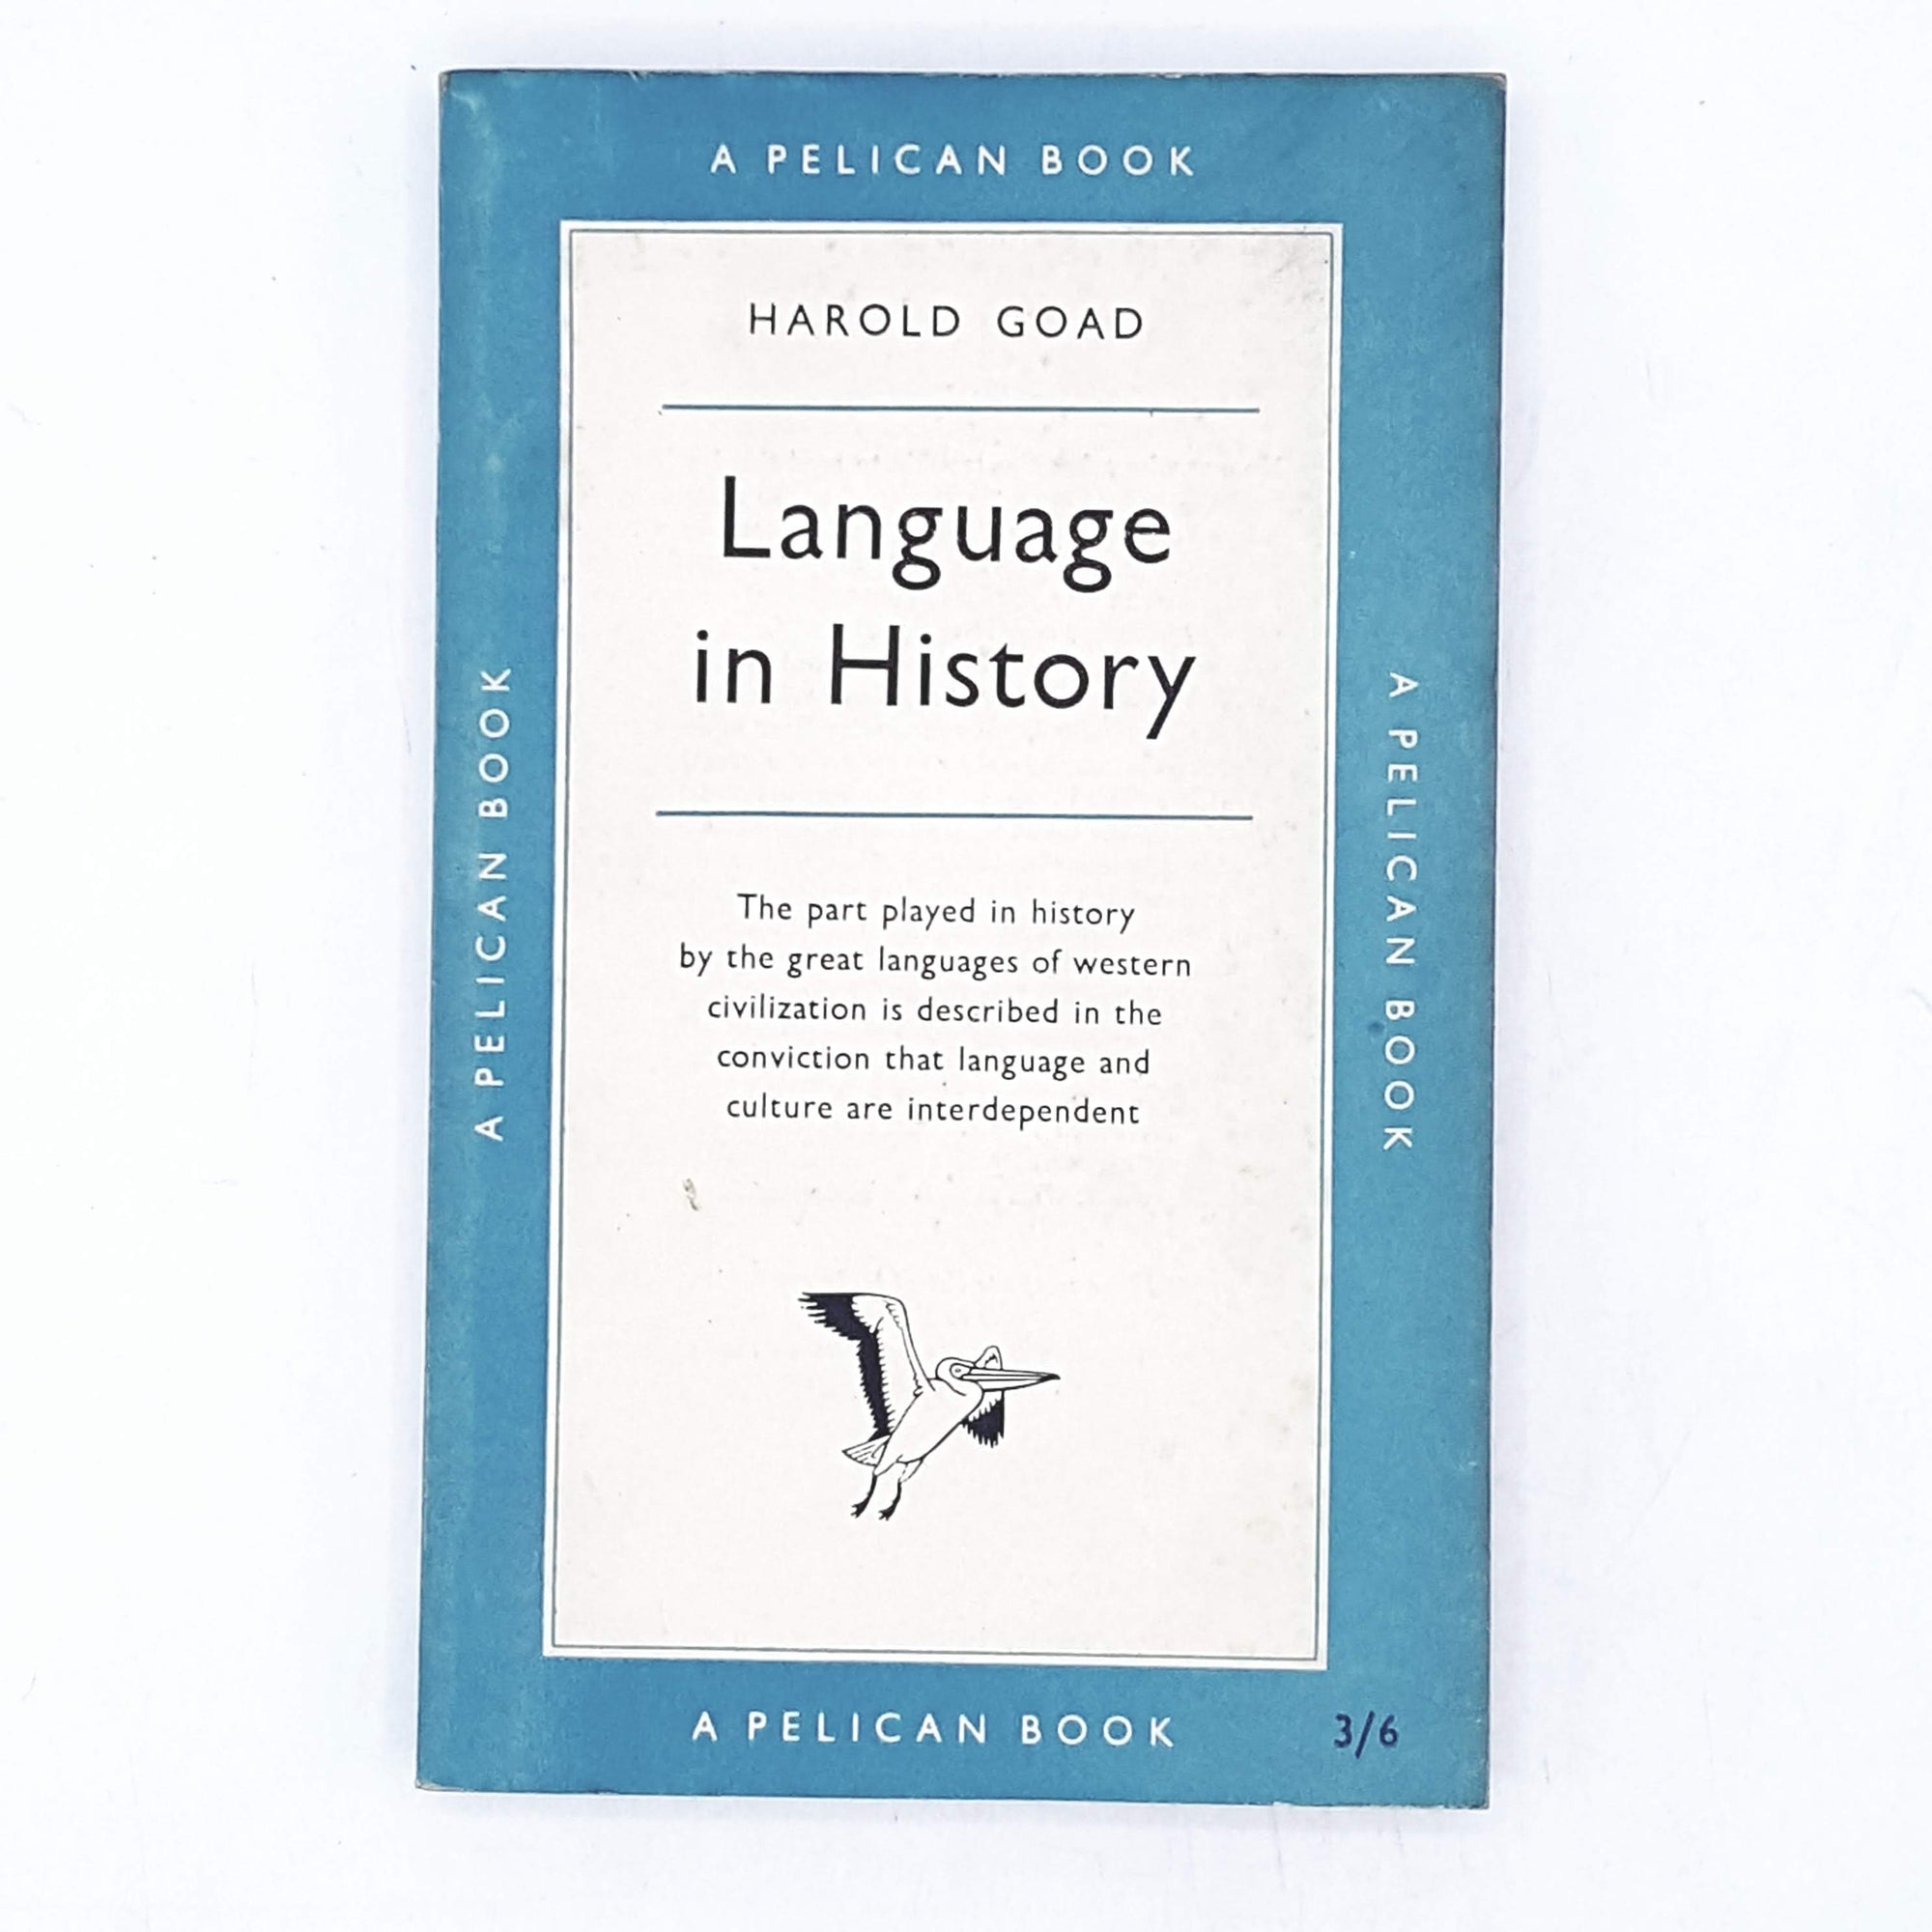 Language in History by Harold Goad 1958